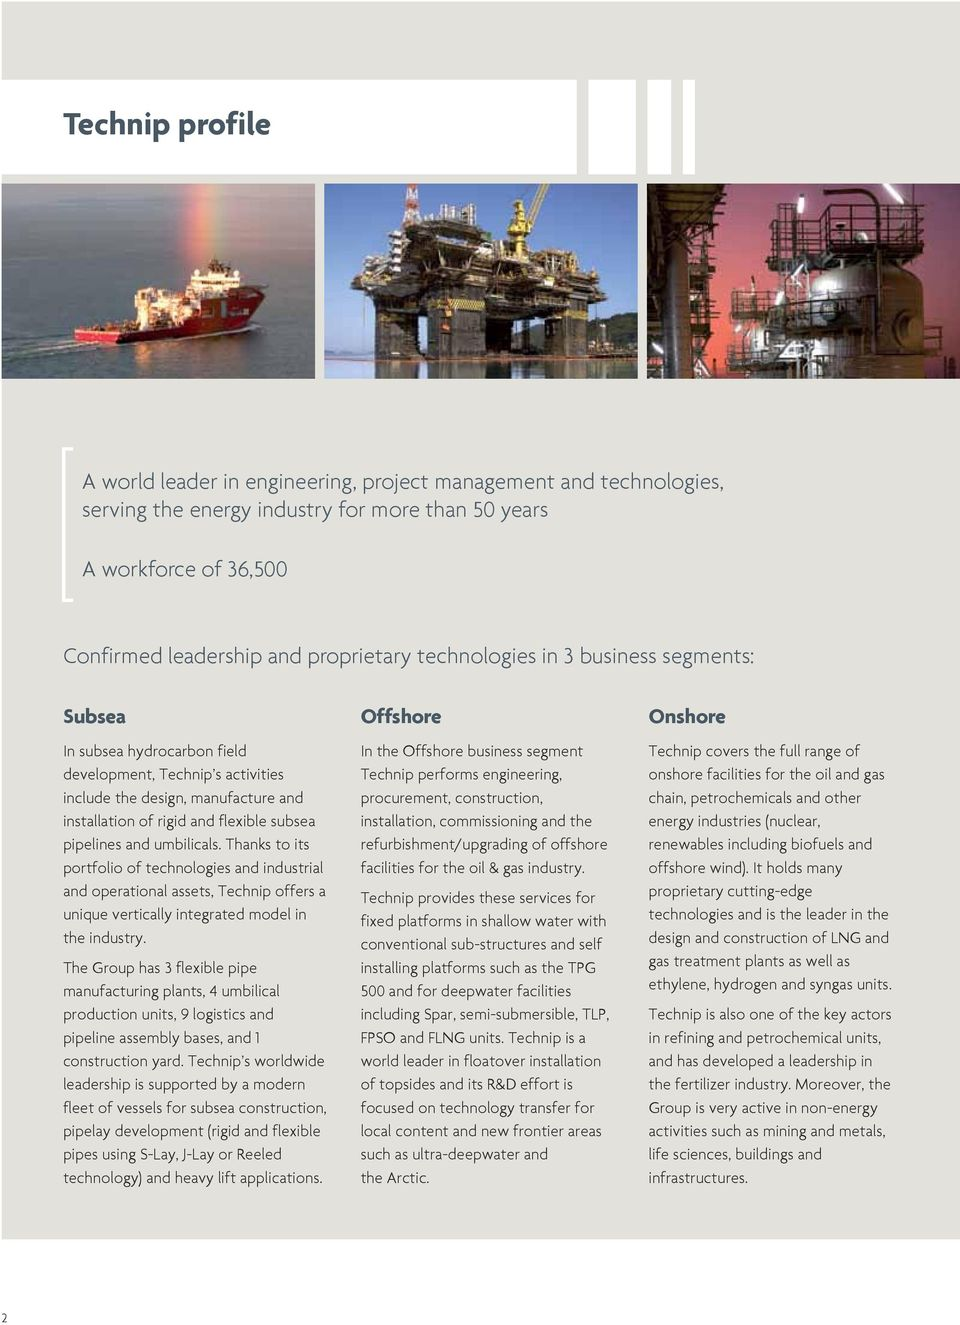 umbilicals. Thanks to its portfolio of technologies and industrial and operational assets, Technip offers a unique vertically integrated model in the industry.